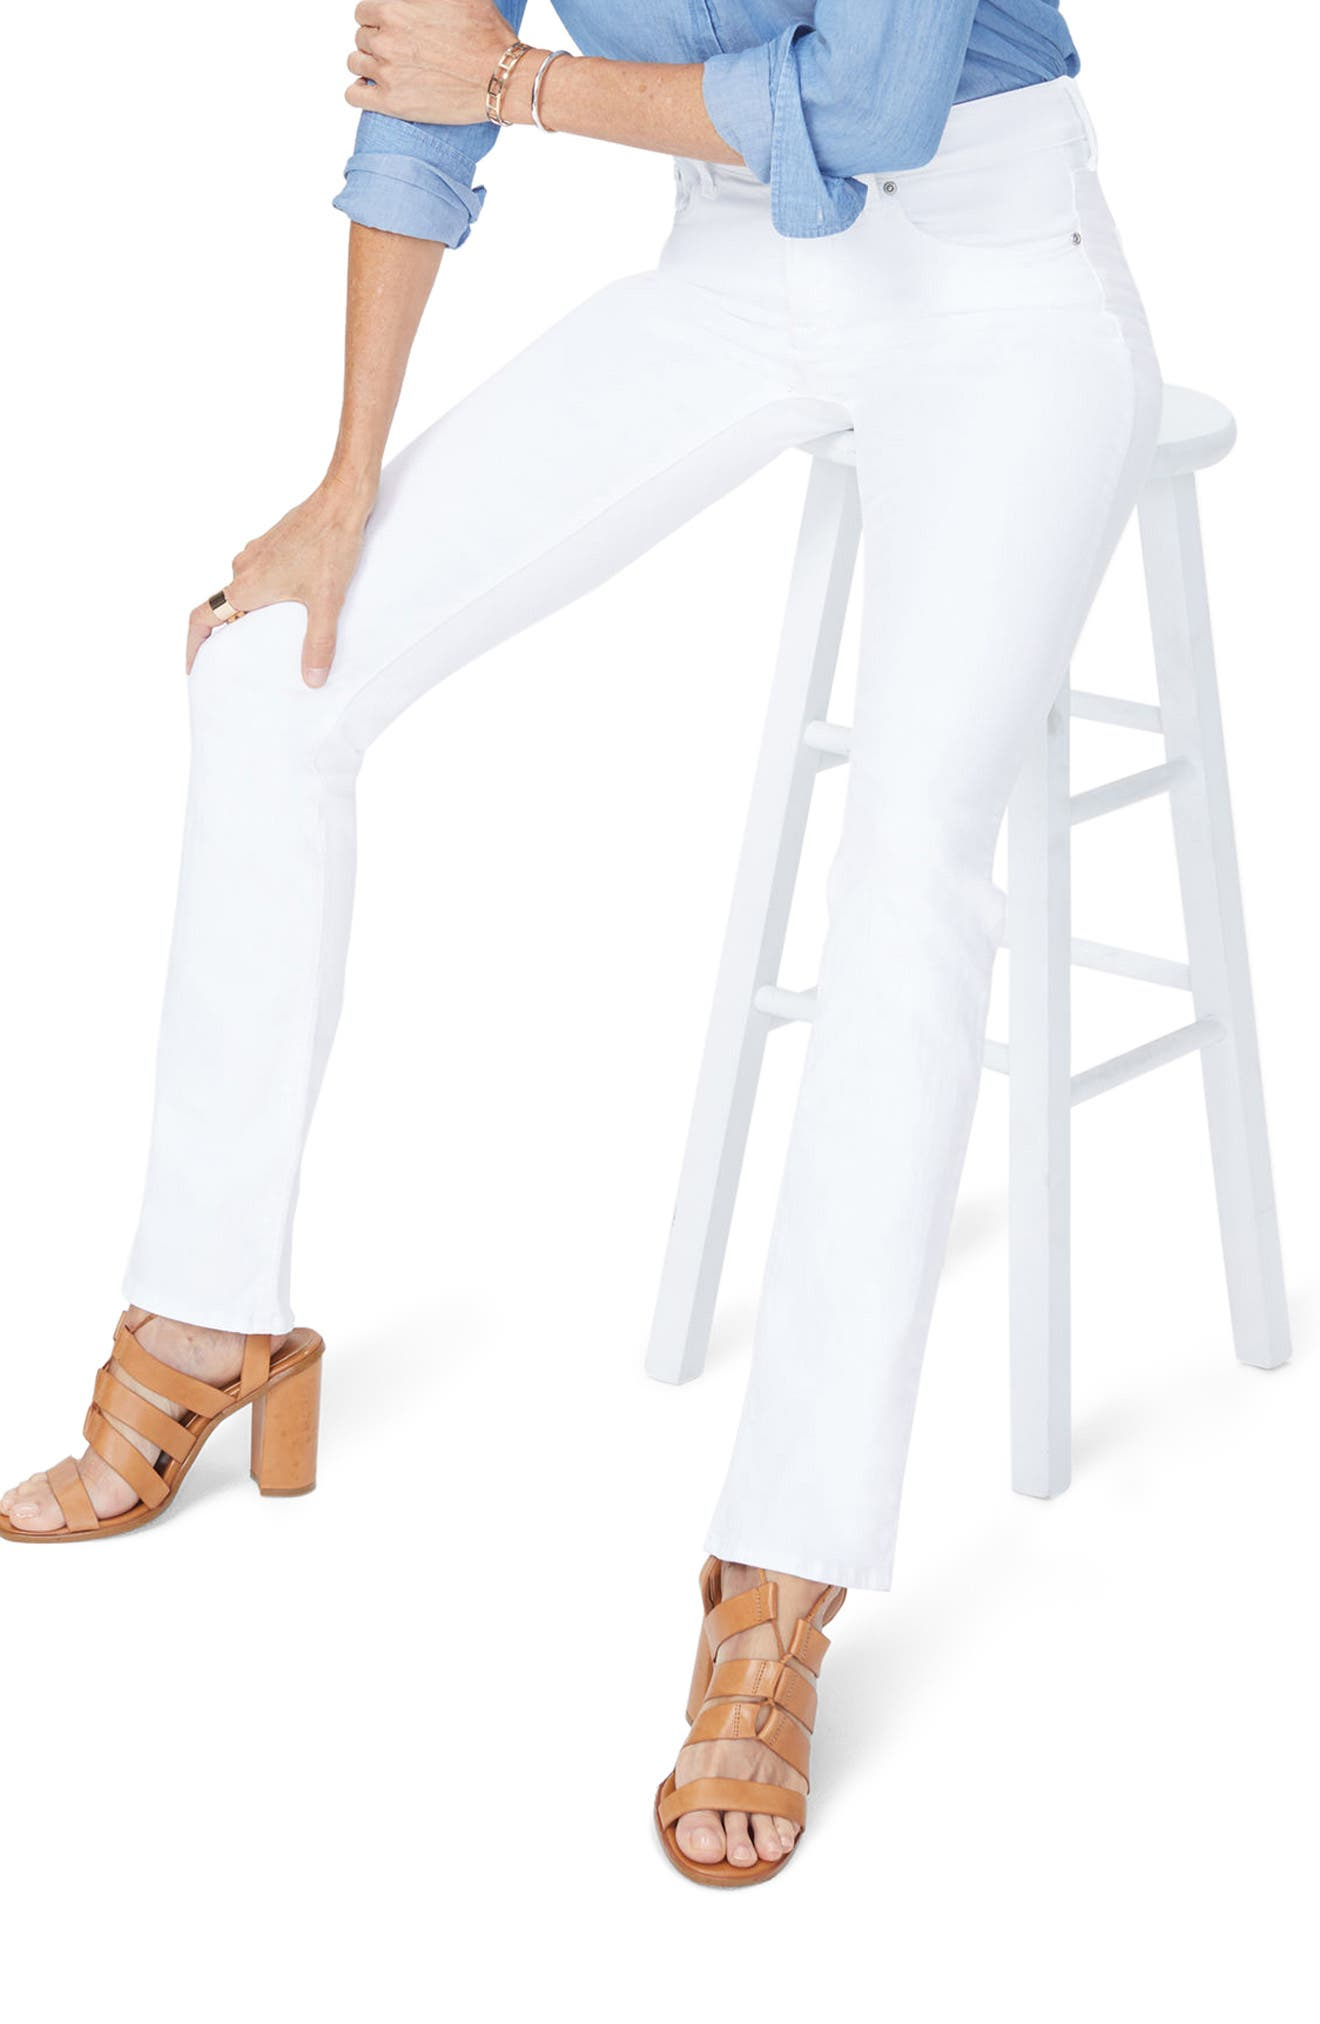 Billie Mini Bootcut Jeans,                         Main,                         color, Optic White